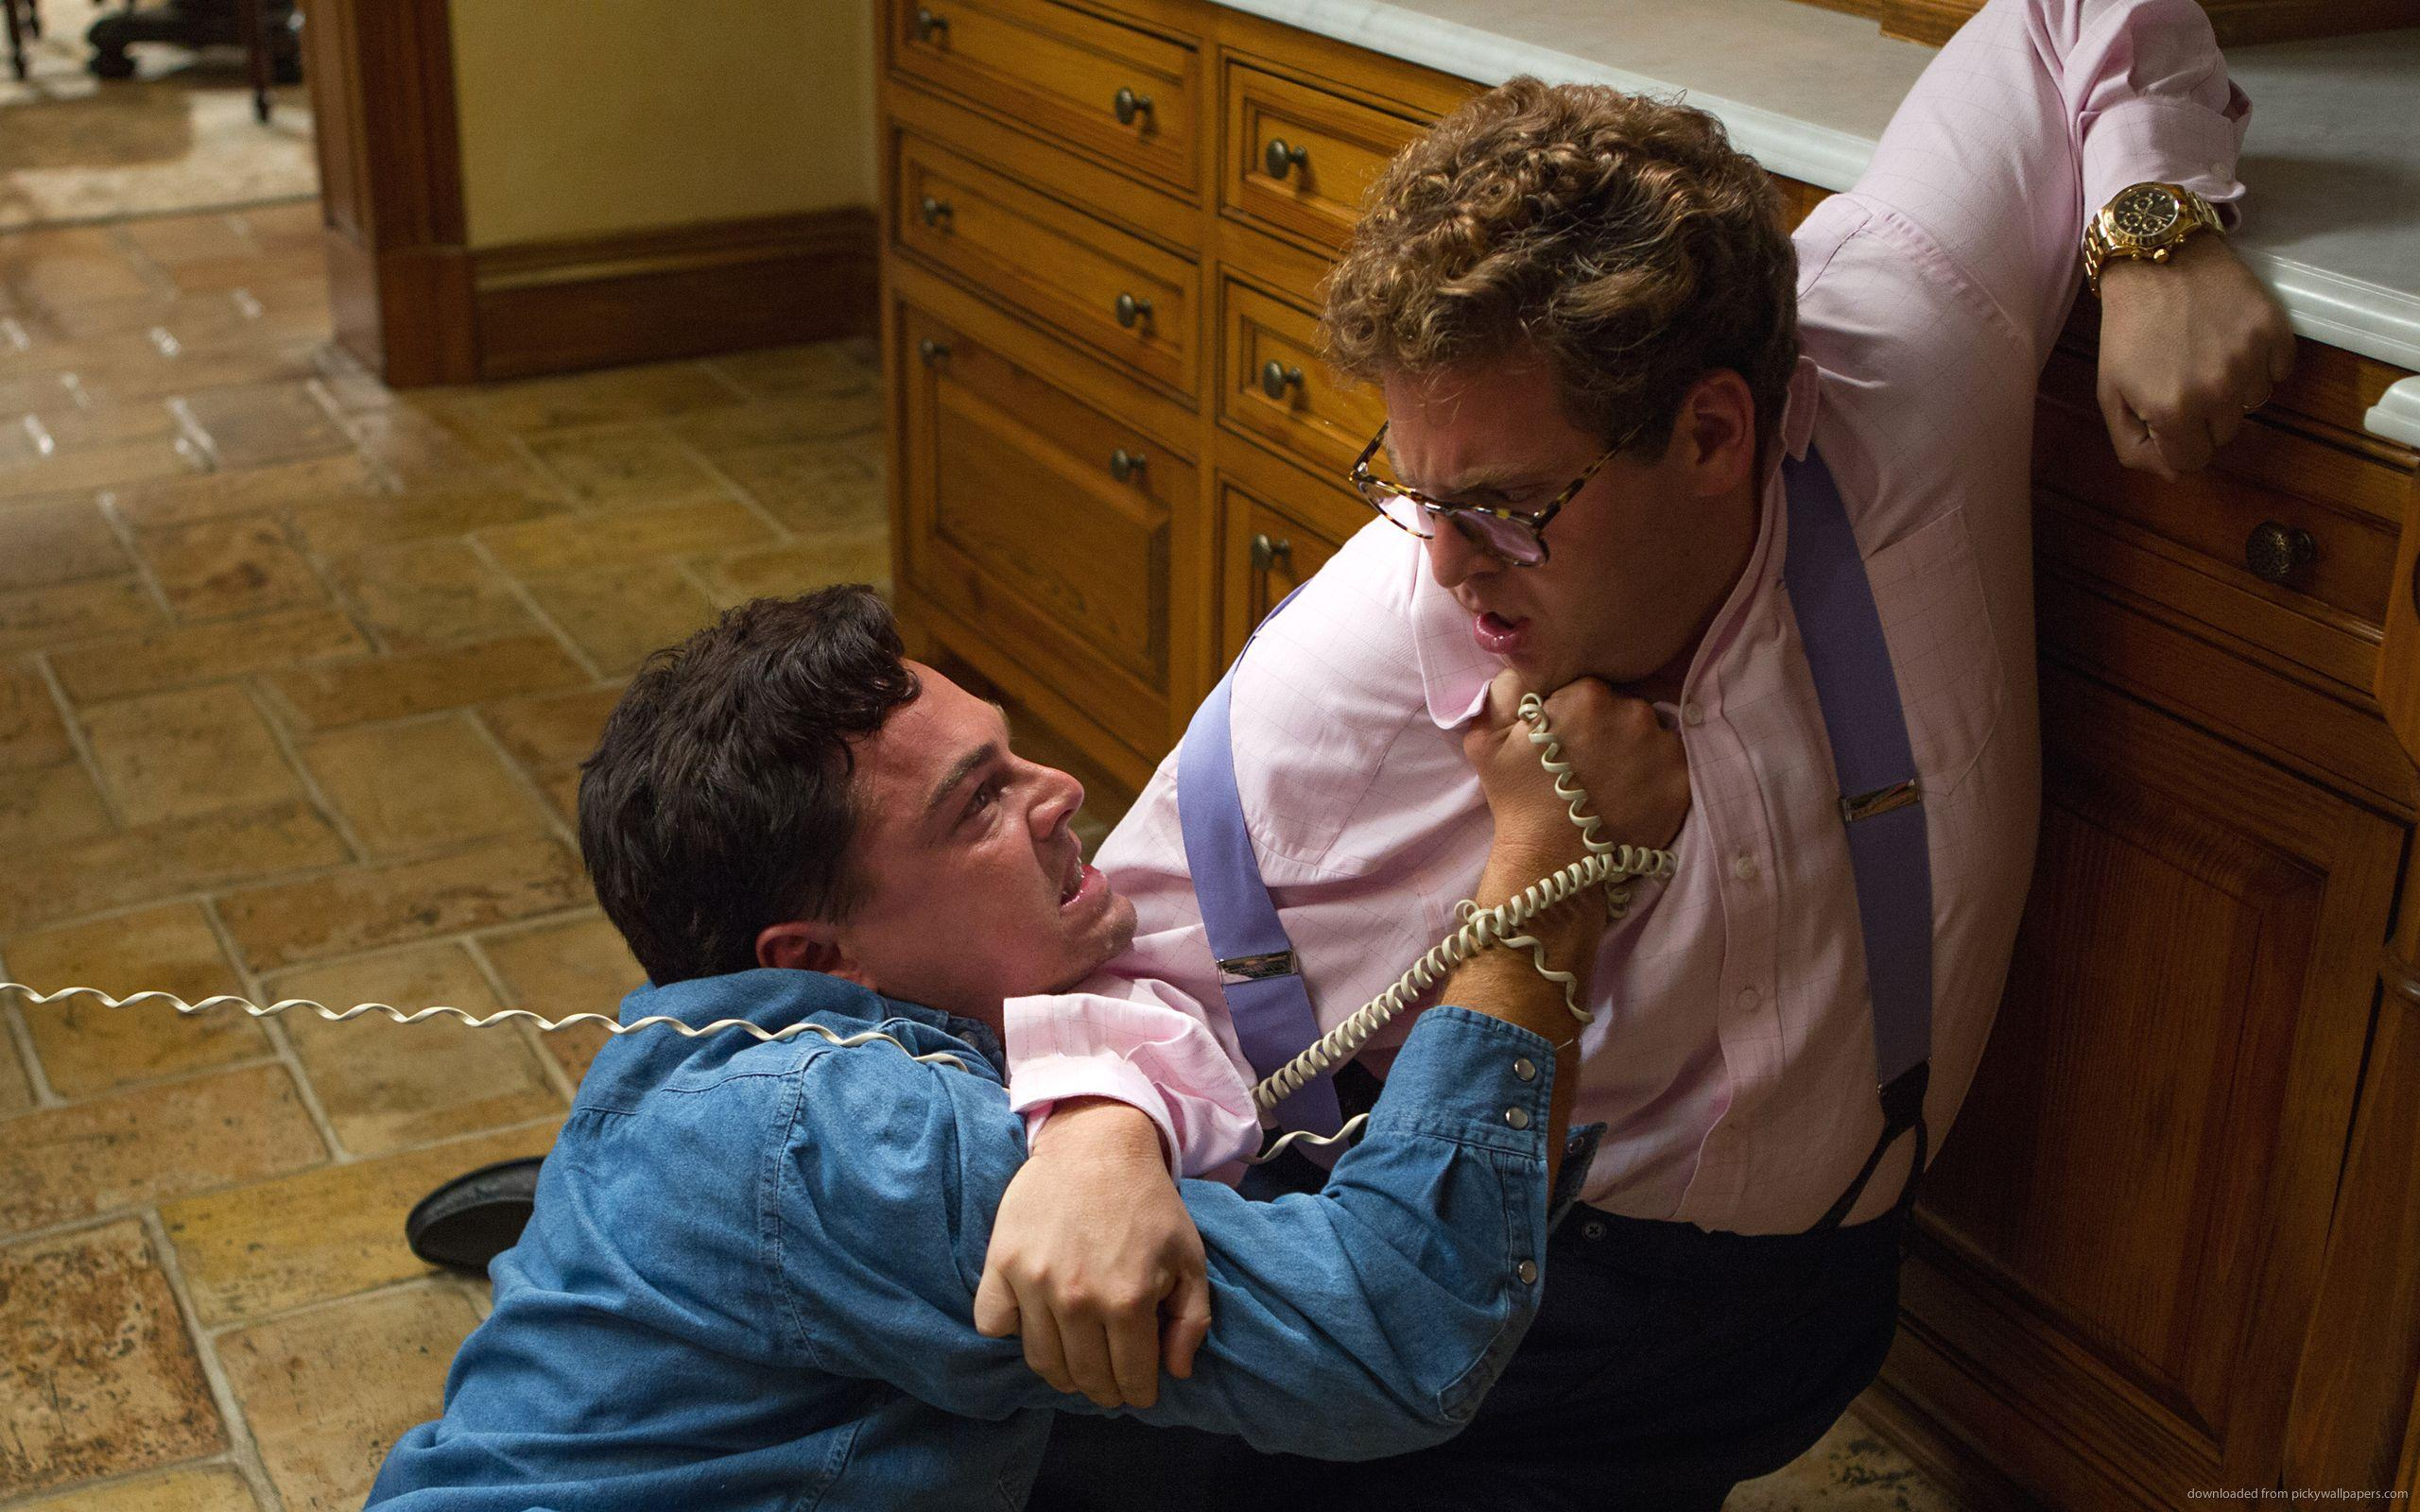 Download 2560x1600 Leonardo DiCaprio And Jonah Hill Fighting Wallpaper